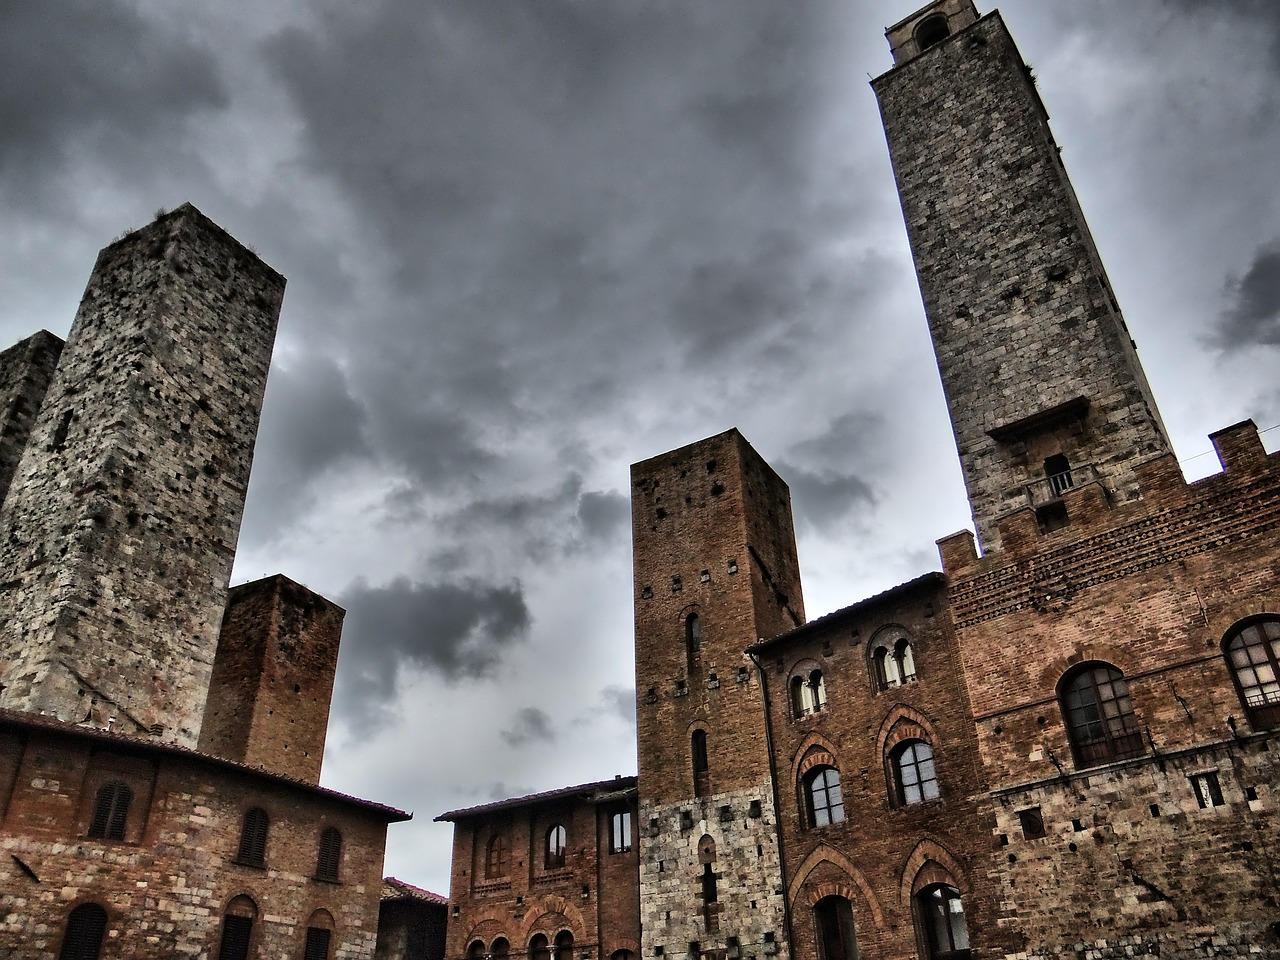 Imposing looking tower in San Gimignano with dark clouds in background.